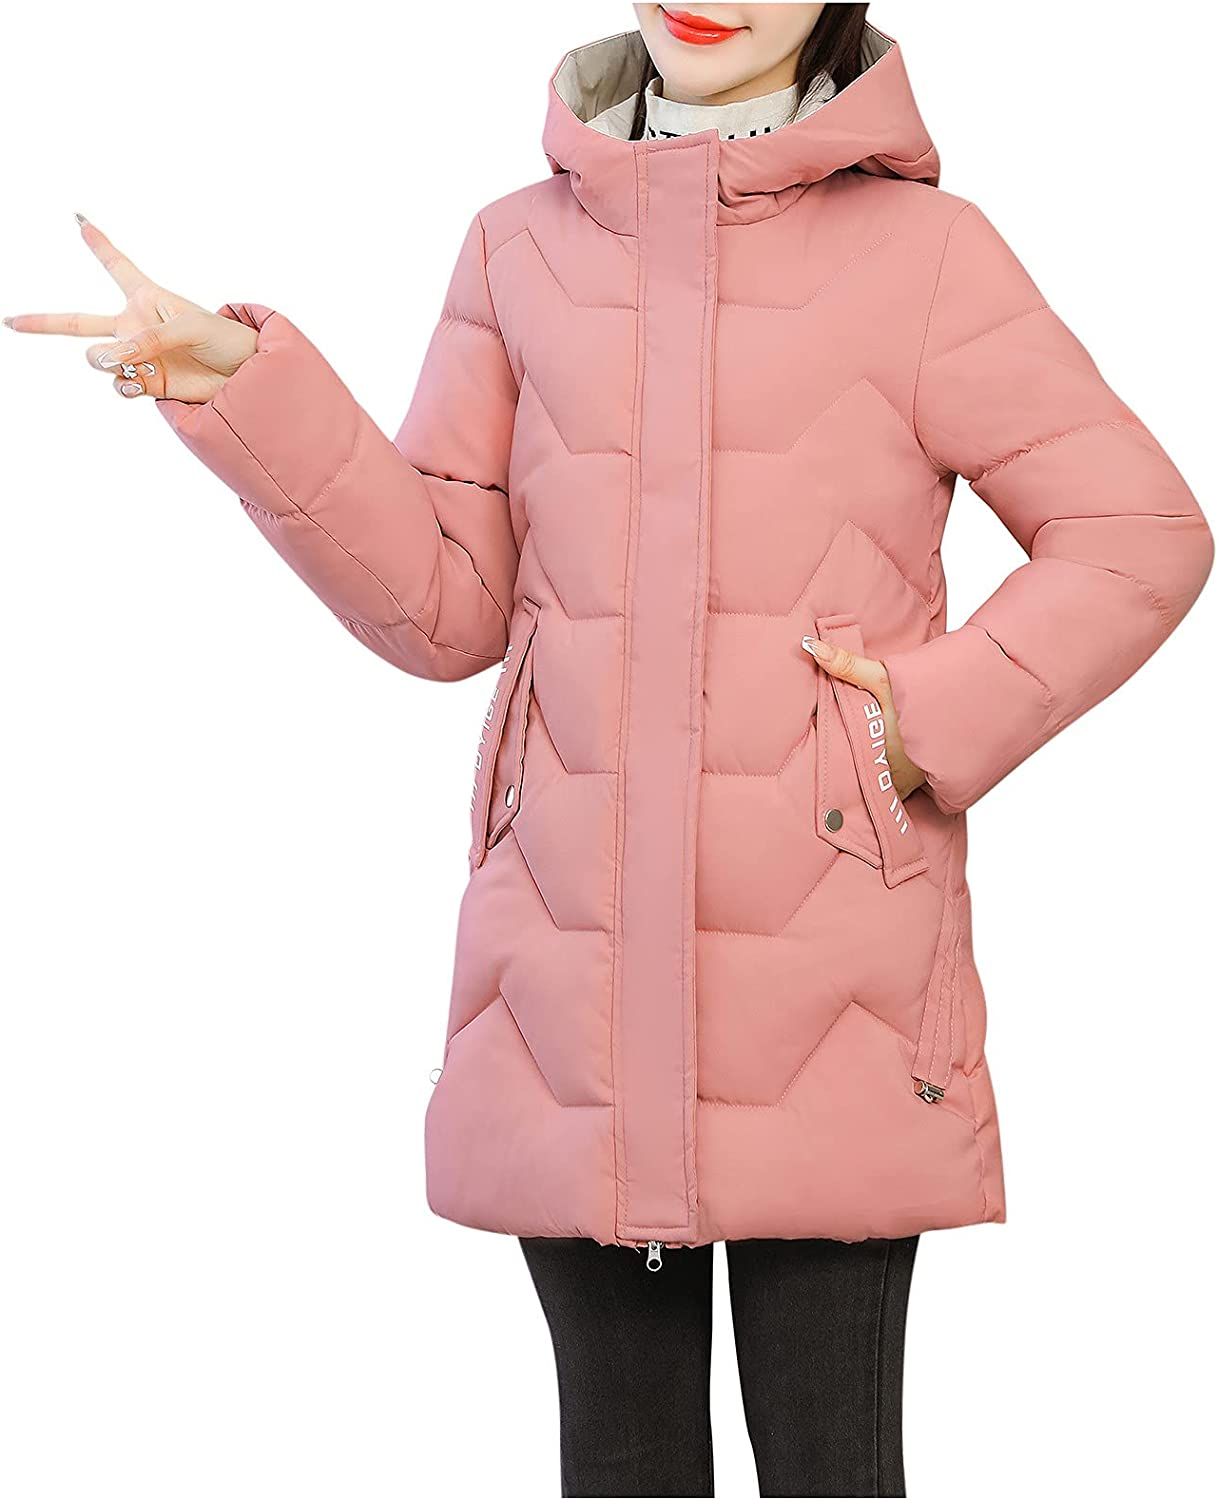 ManxiVoo Women's Winter Down Coat Quilted Jacket with Hood Padding Jacket Outercoat with Pocket